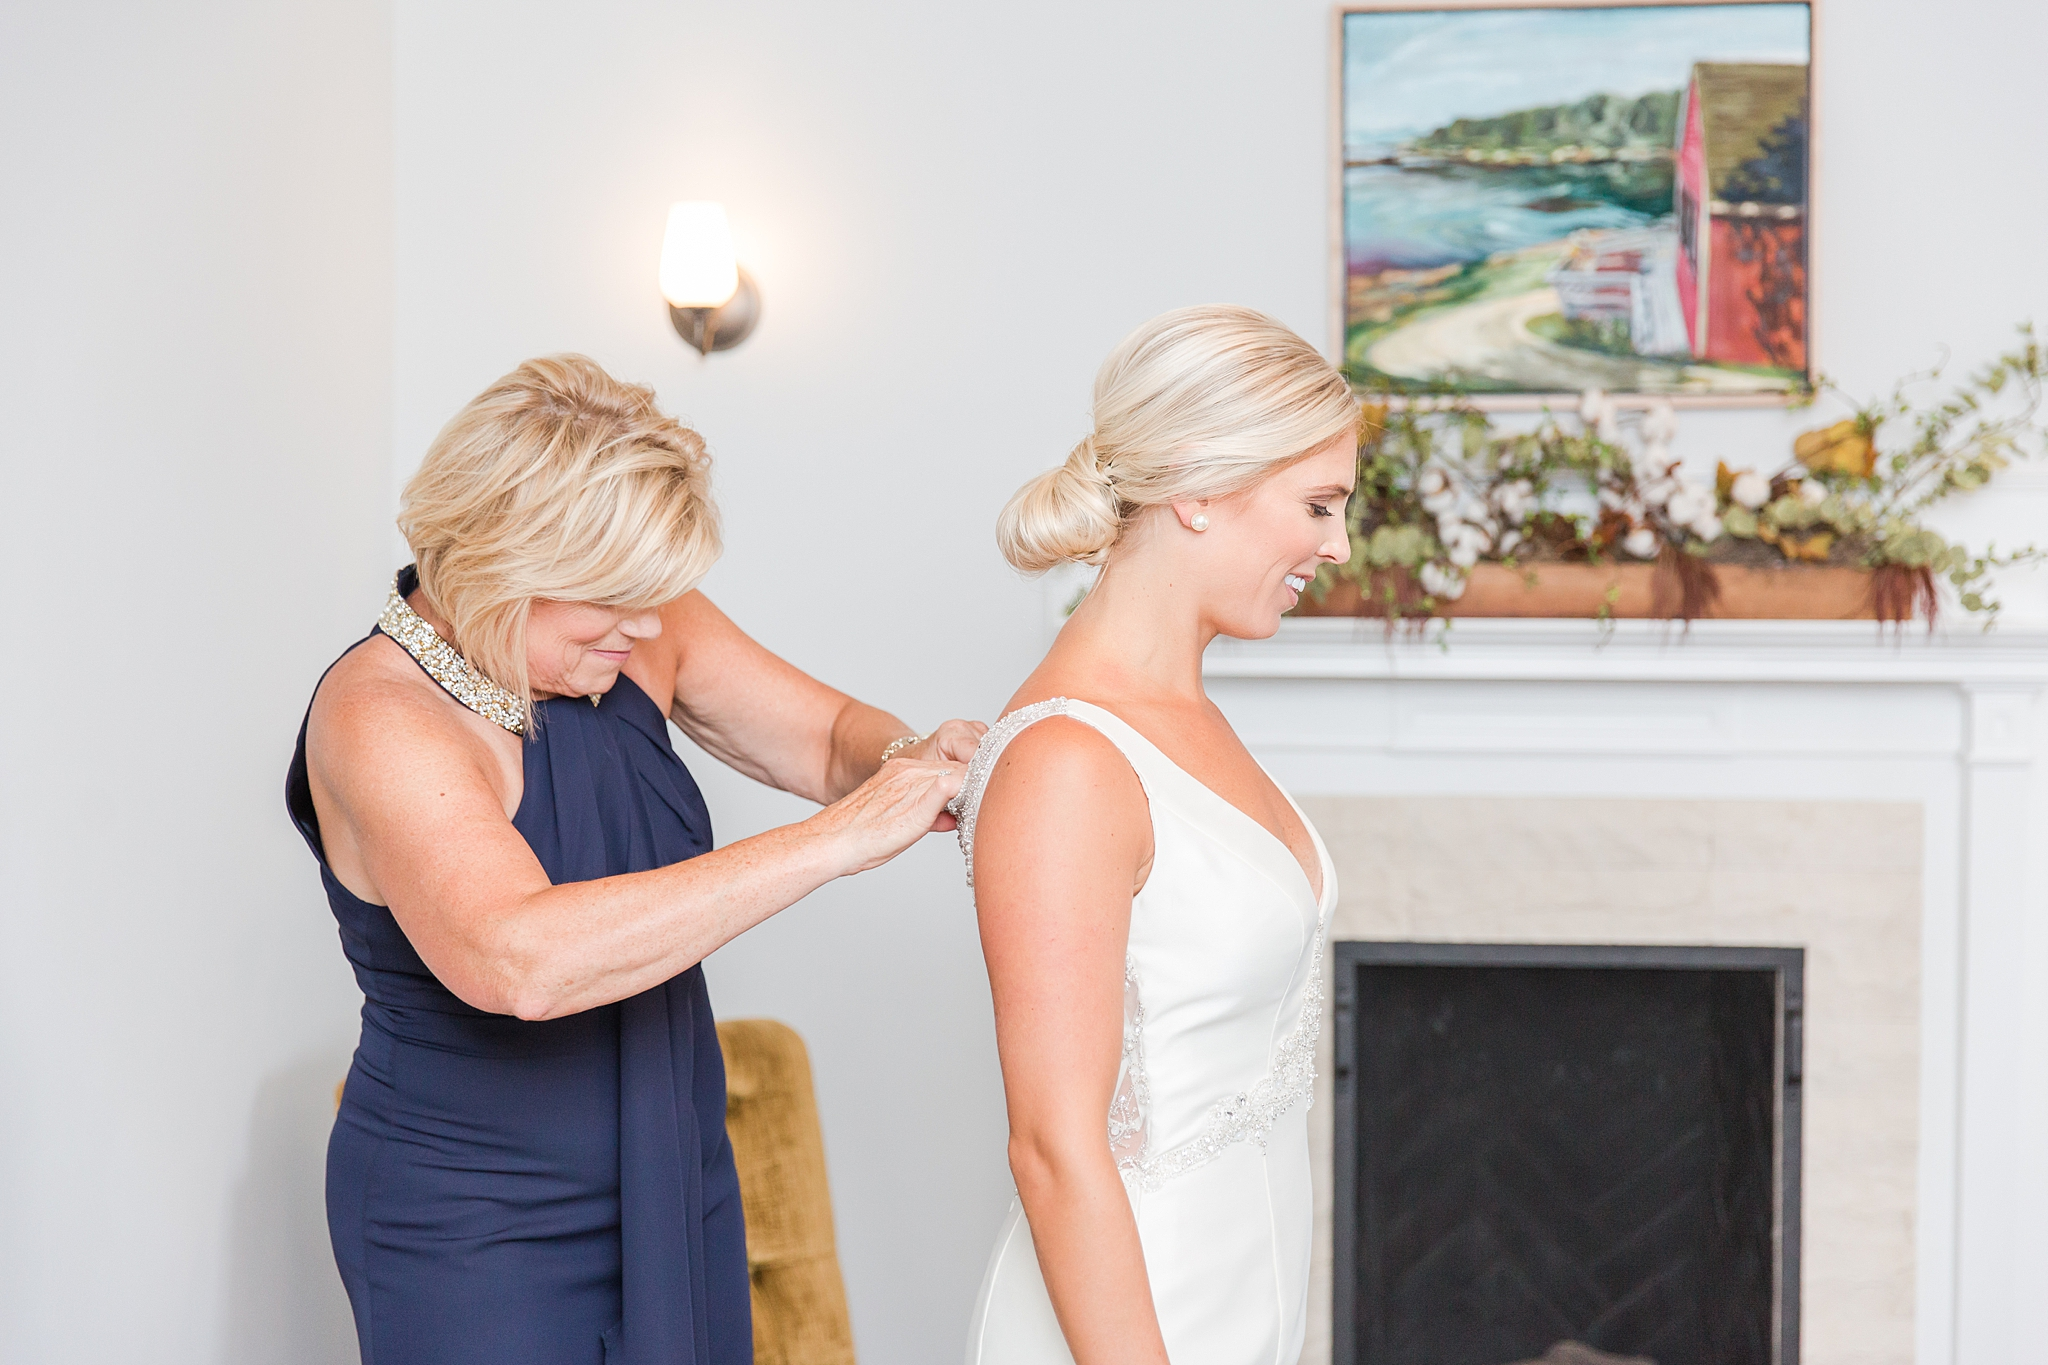 chapman-house-casually-chic-wedding-photography-in-rochester-michigan-by-courtney-carolyn-photography_0004.jpg